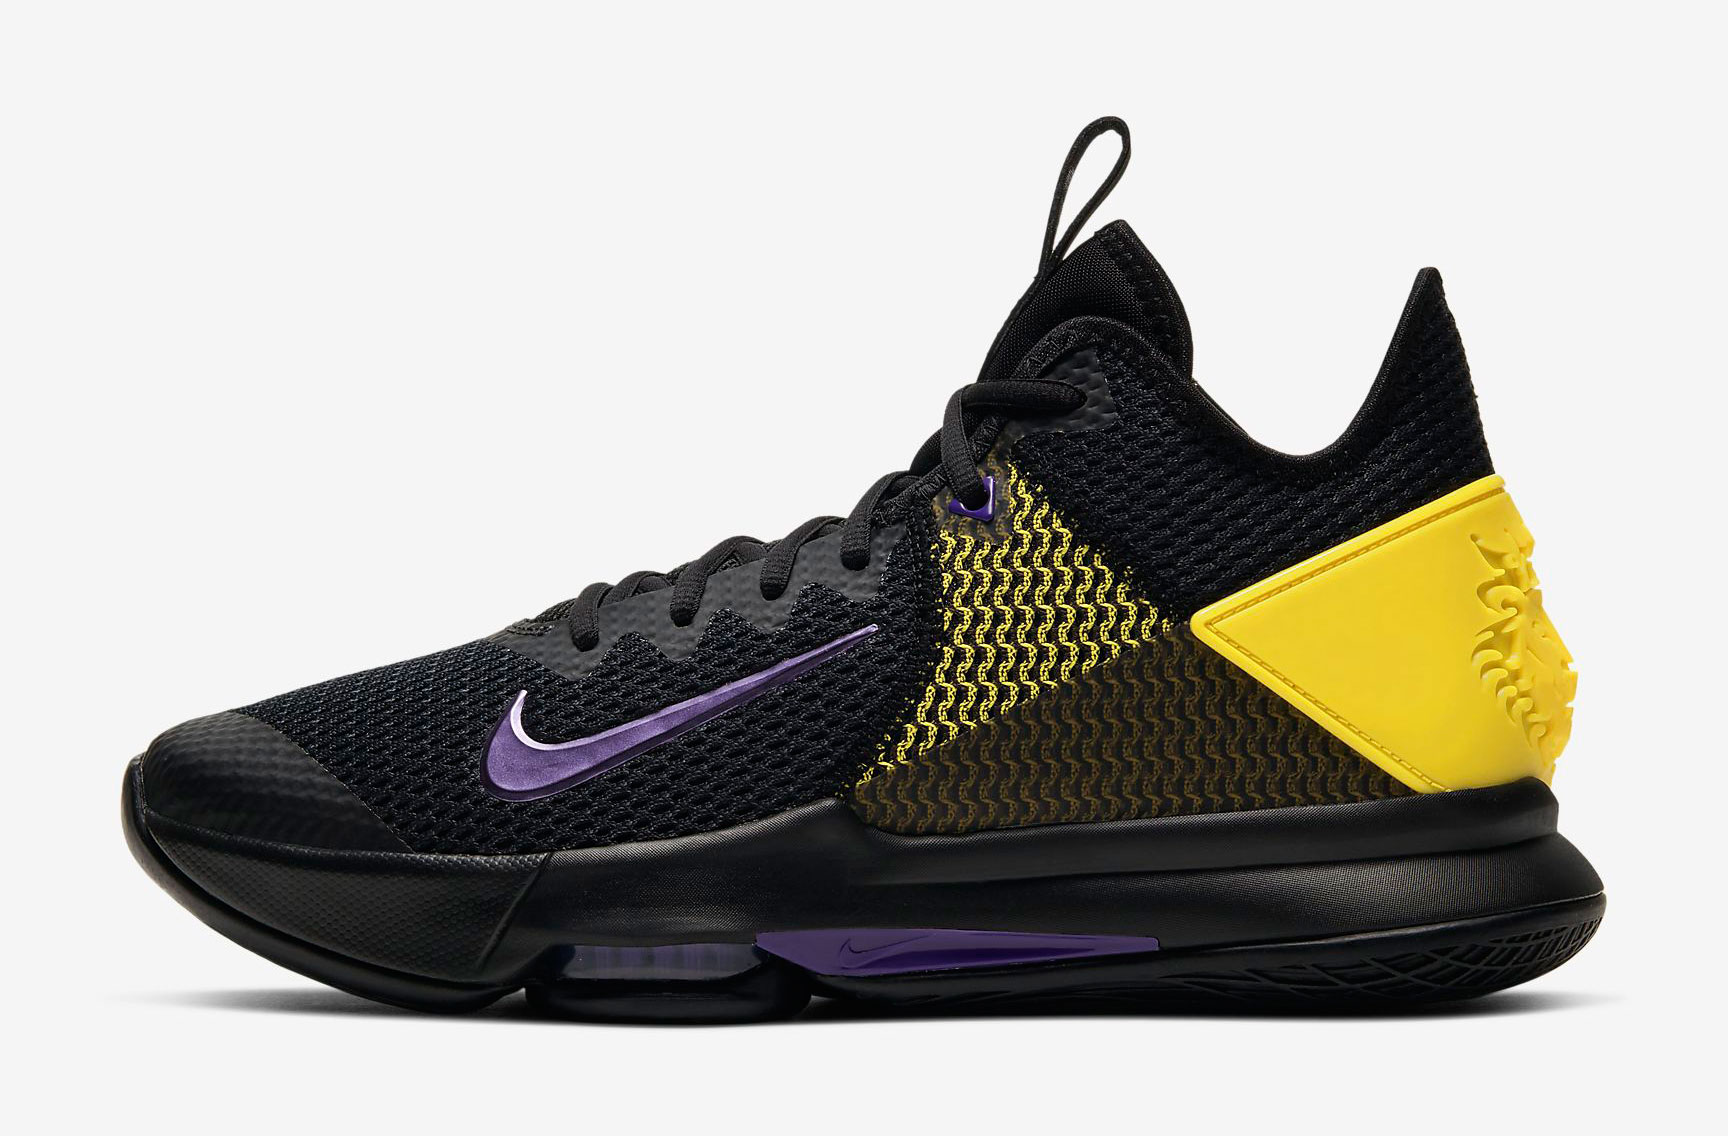 nike-lebron-witness-4-black-yellow-lakers-release-date